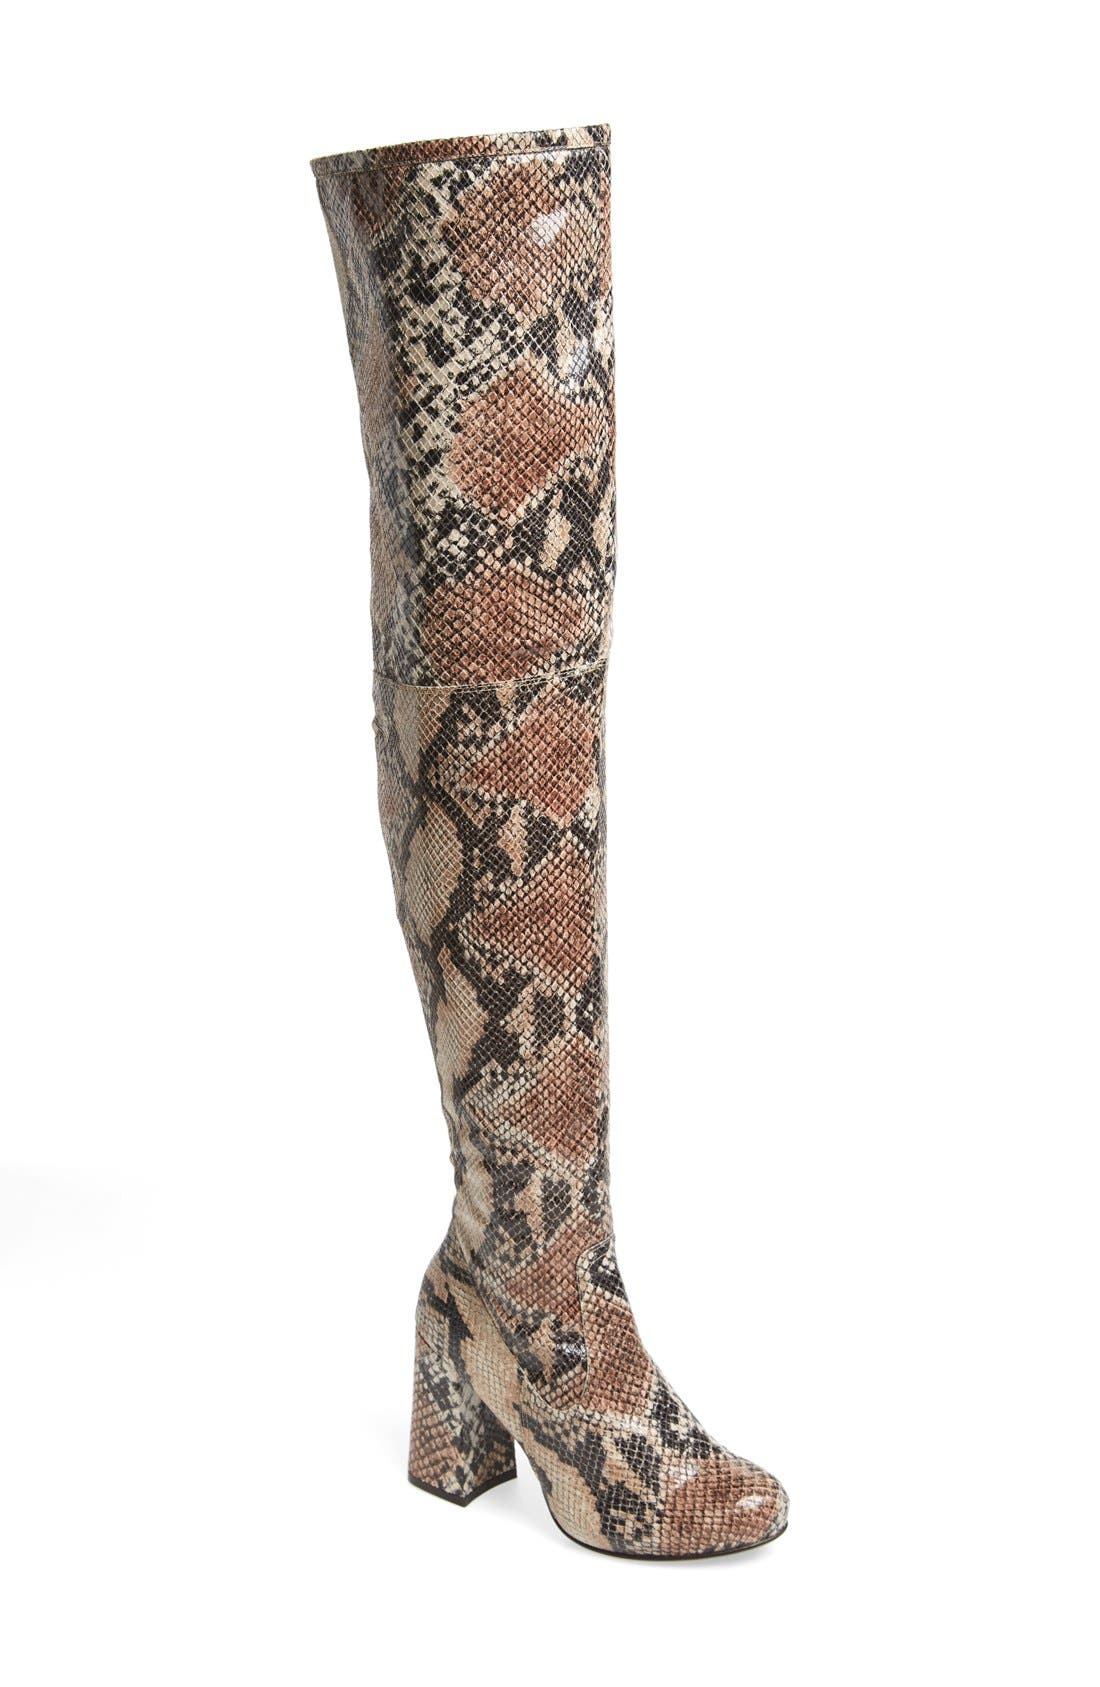 Main Image - Shellys London 'Kay' Over the Knee Boot (Women)